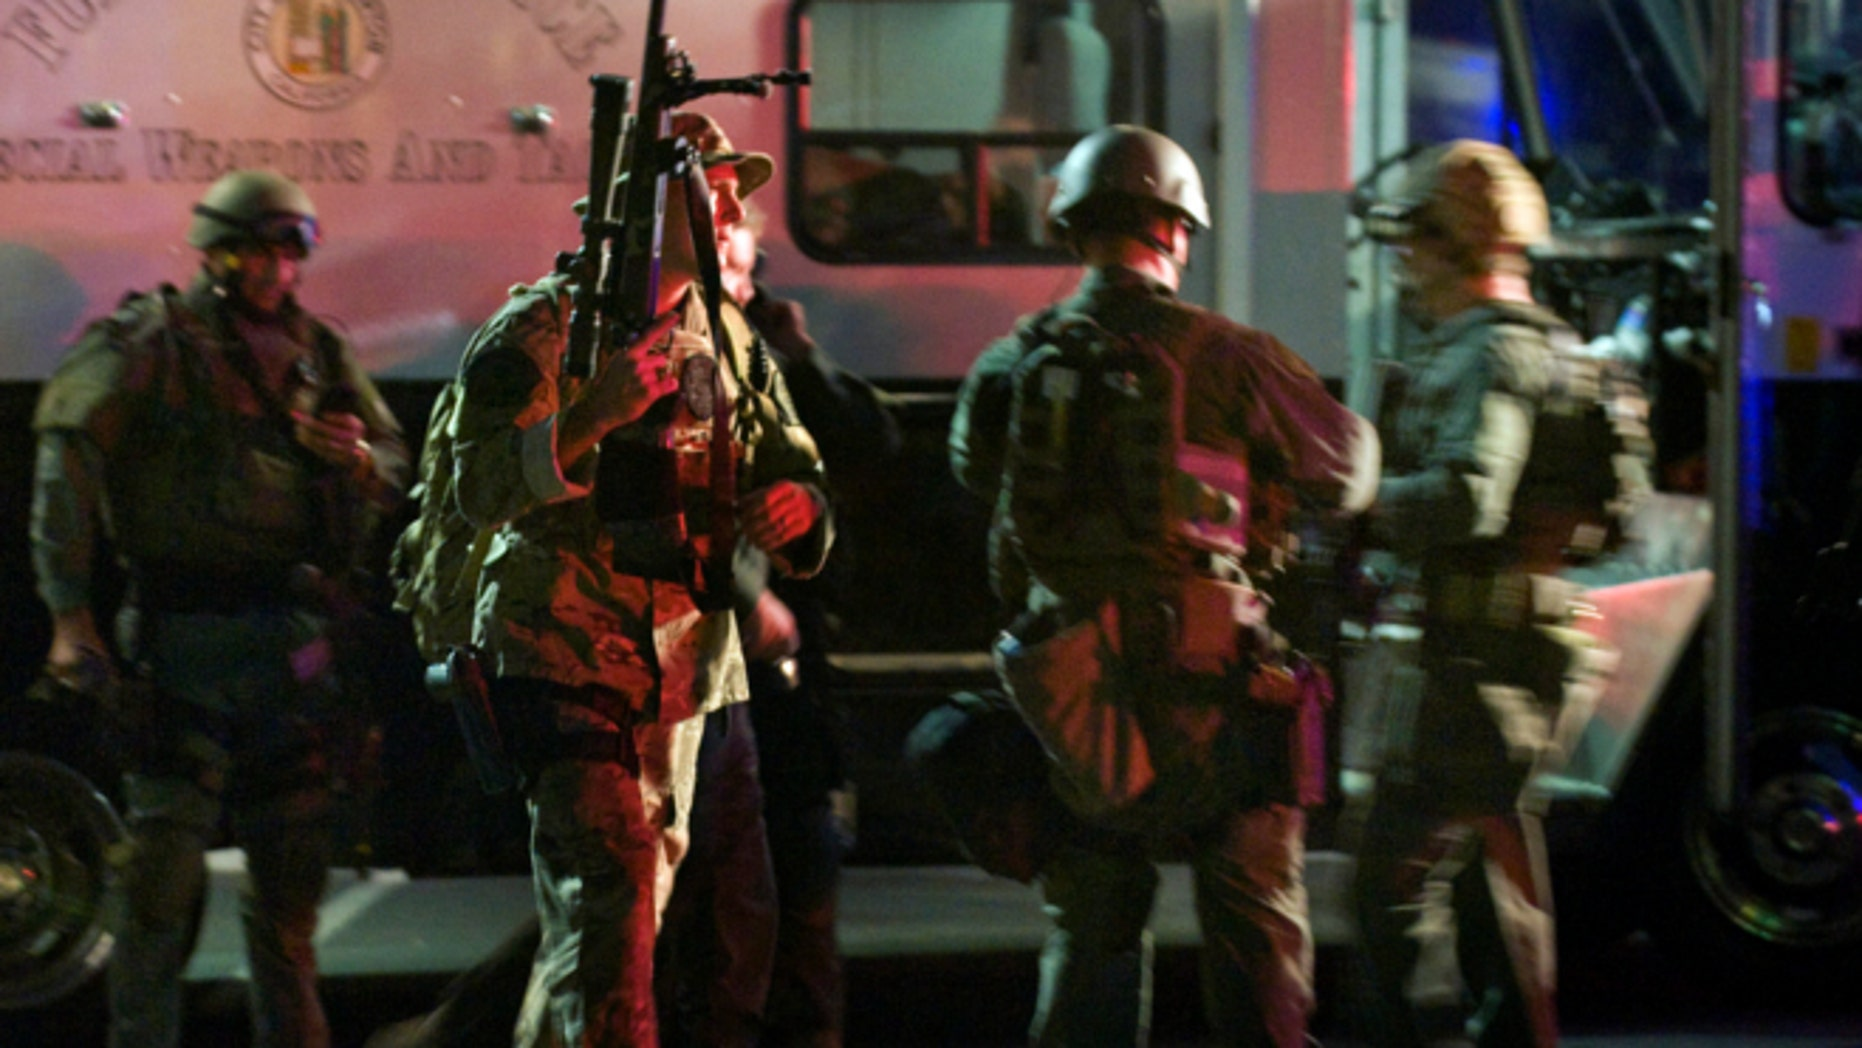 Dec. 12, 2012: SWAT team members form up near a command post south of the Cal State Fullerton campus in Fullerton, Calif.